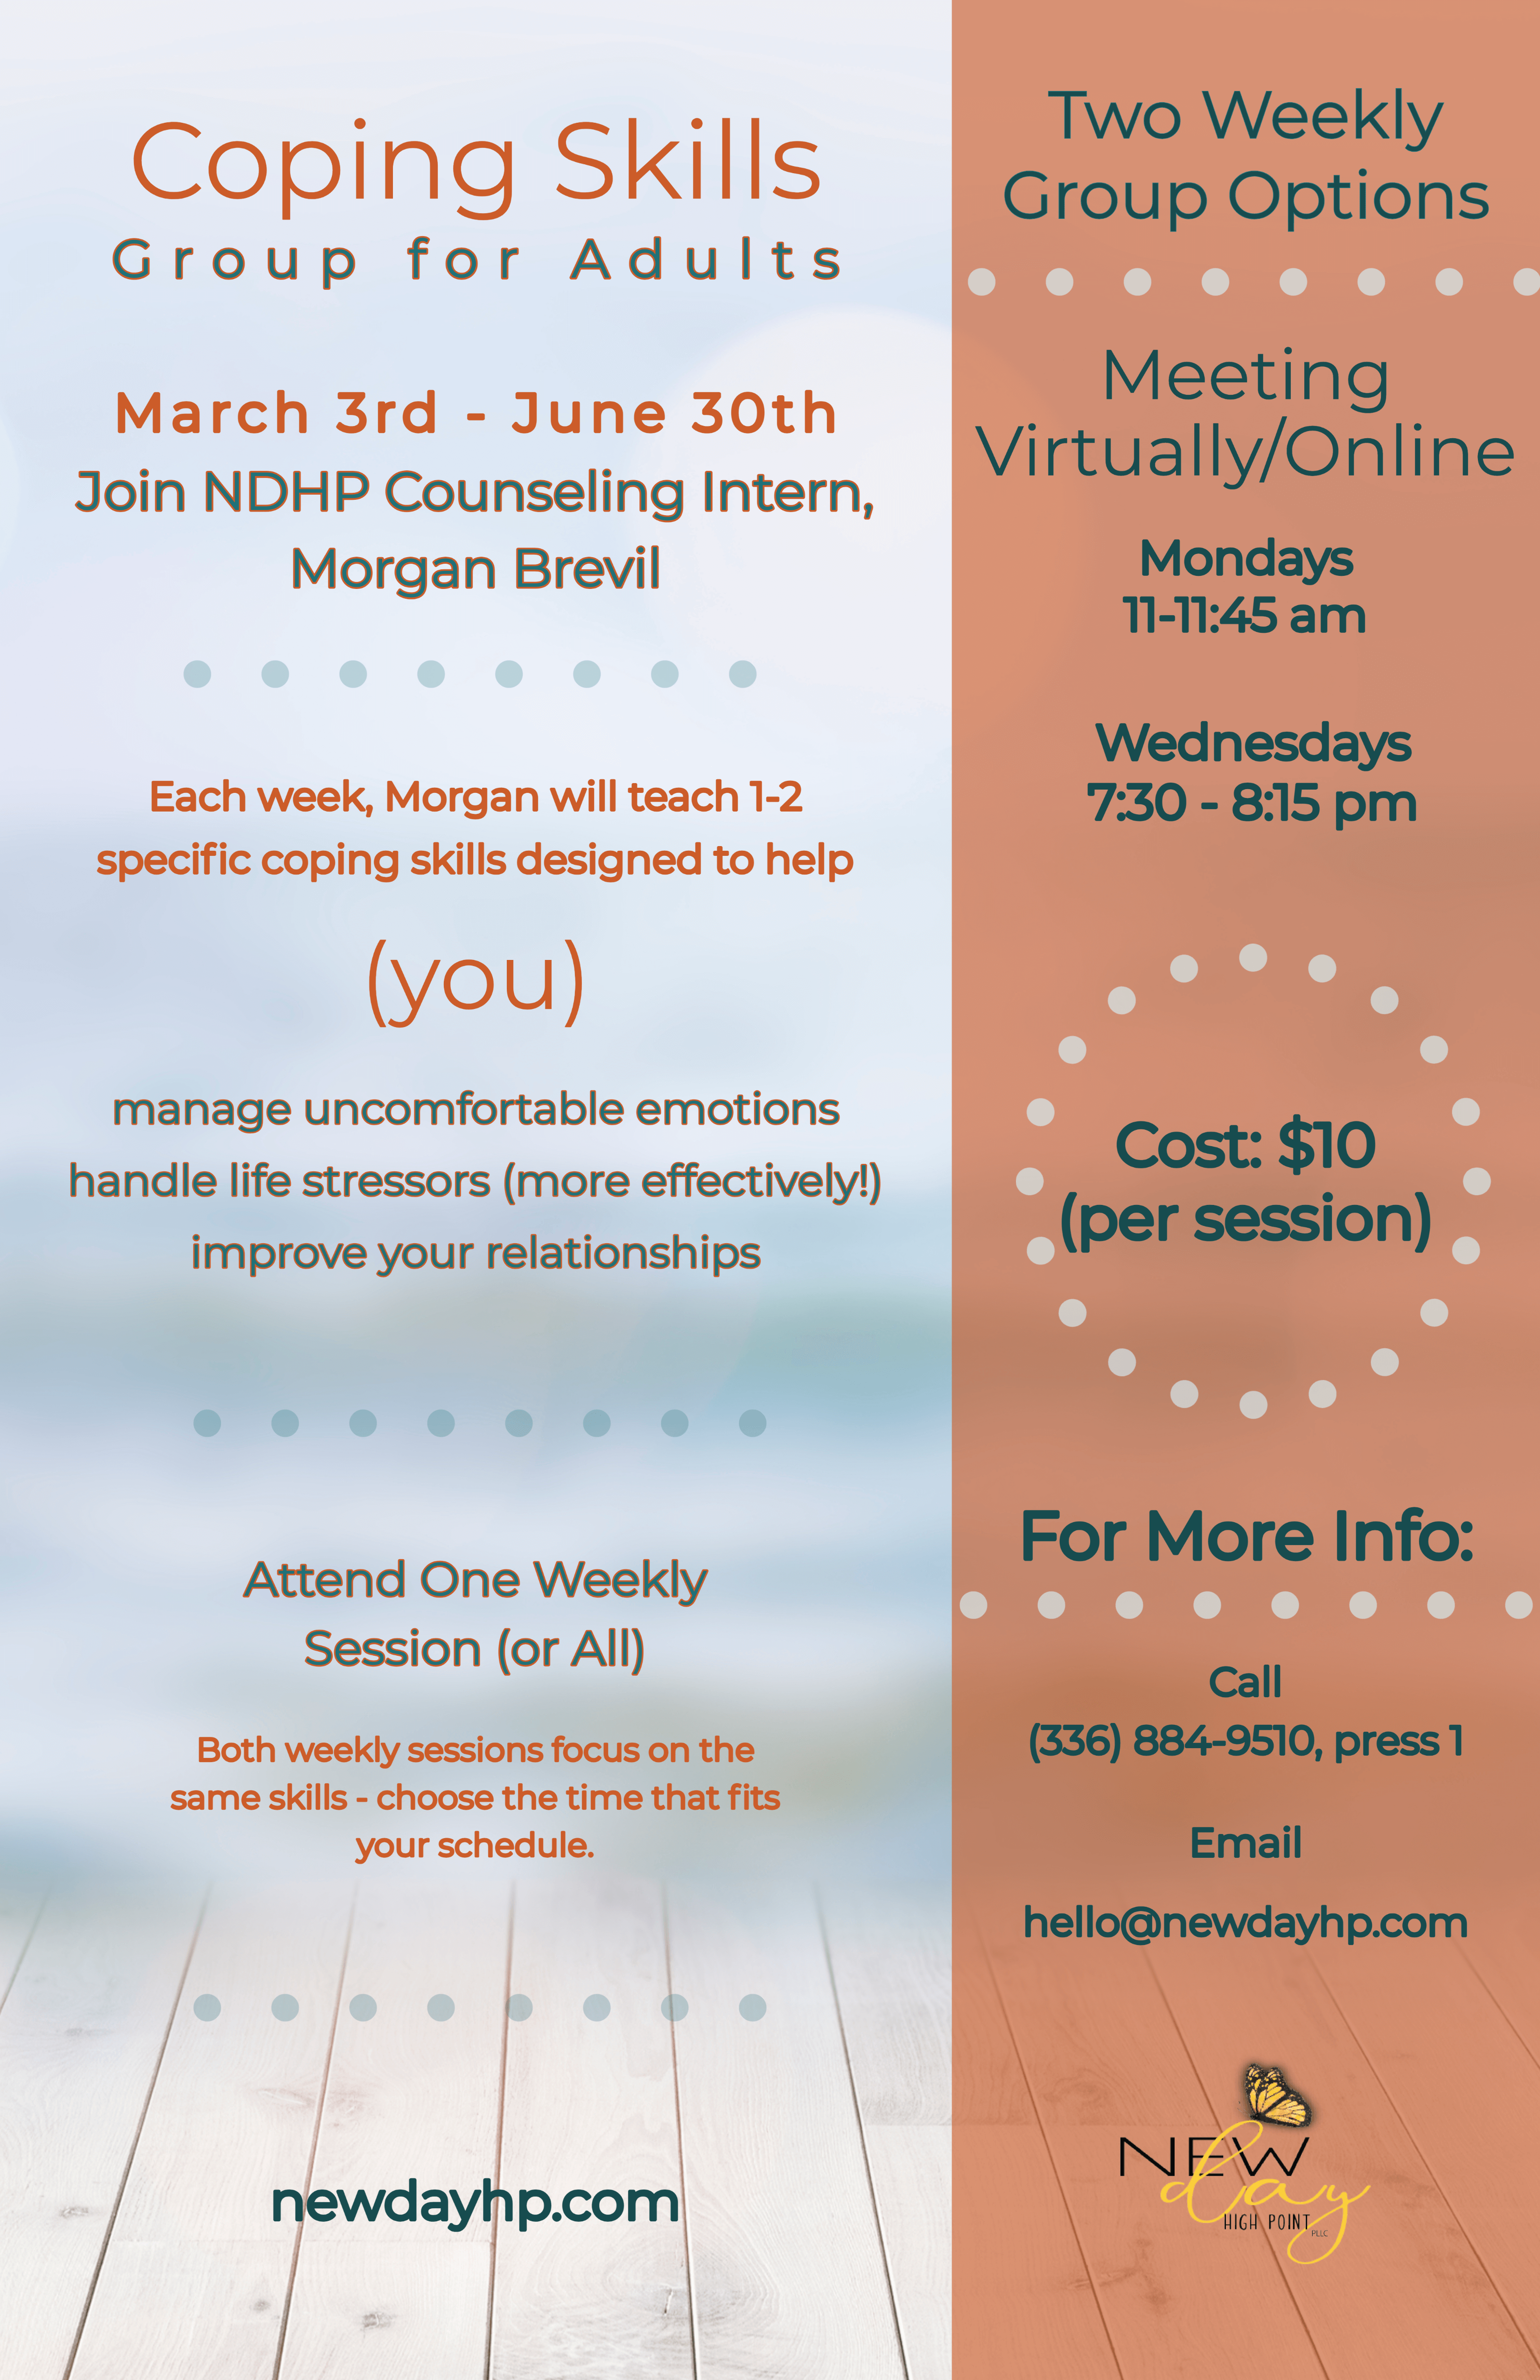 Coping Skills Group - Still Going & Extended through June 30th!